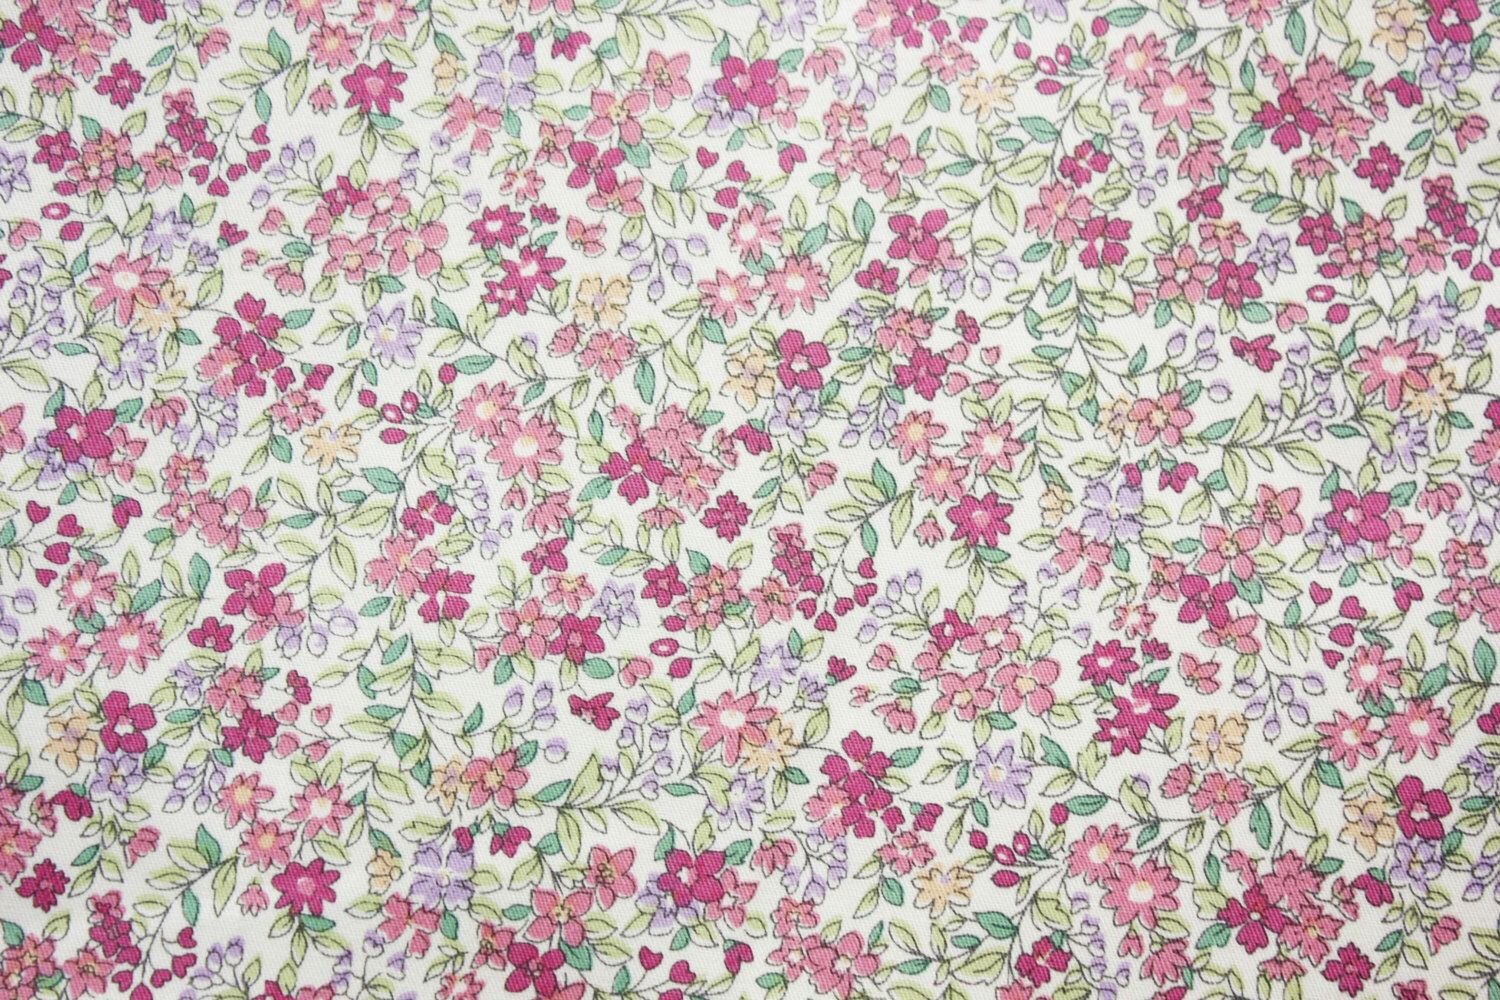 Little Flowers Fabric Japanese Floral Fabric Floral Fabric Cotton Pink Lavender Dressmaking Crafting Quilting Half Floral Fabric Little Flowers Fabric